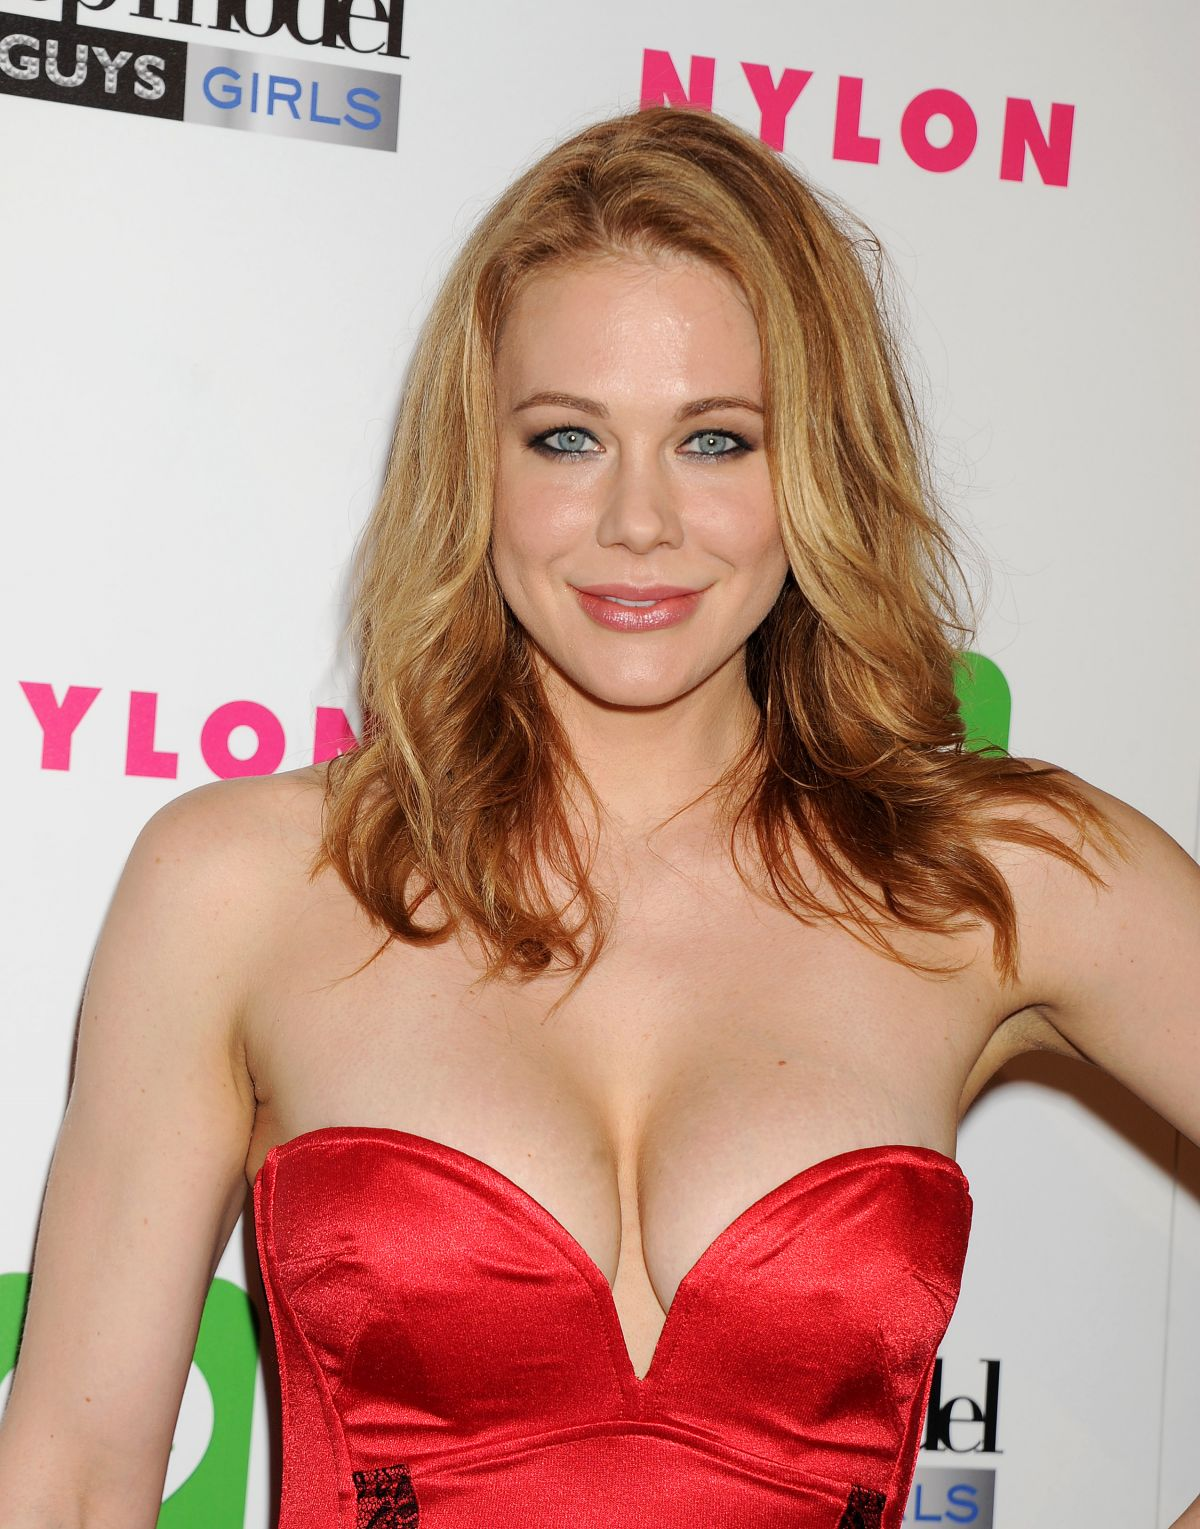 Maitland Ward nudes (23 photos), Tits, Is a cute, Feet, bra 2006